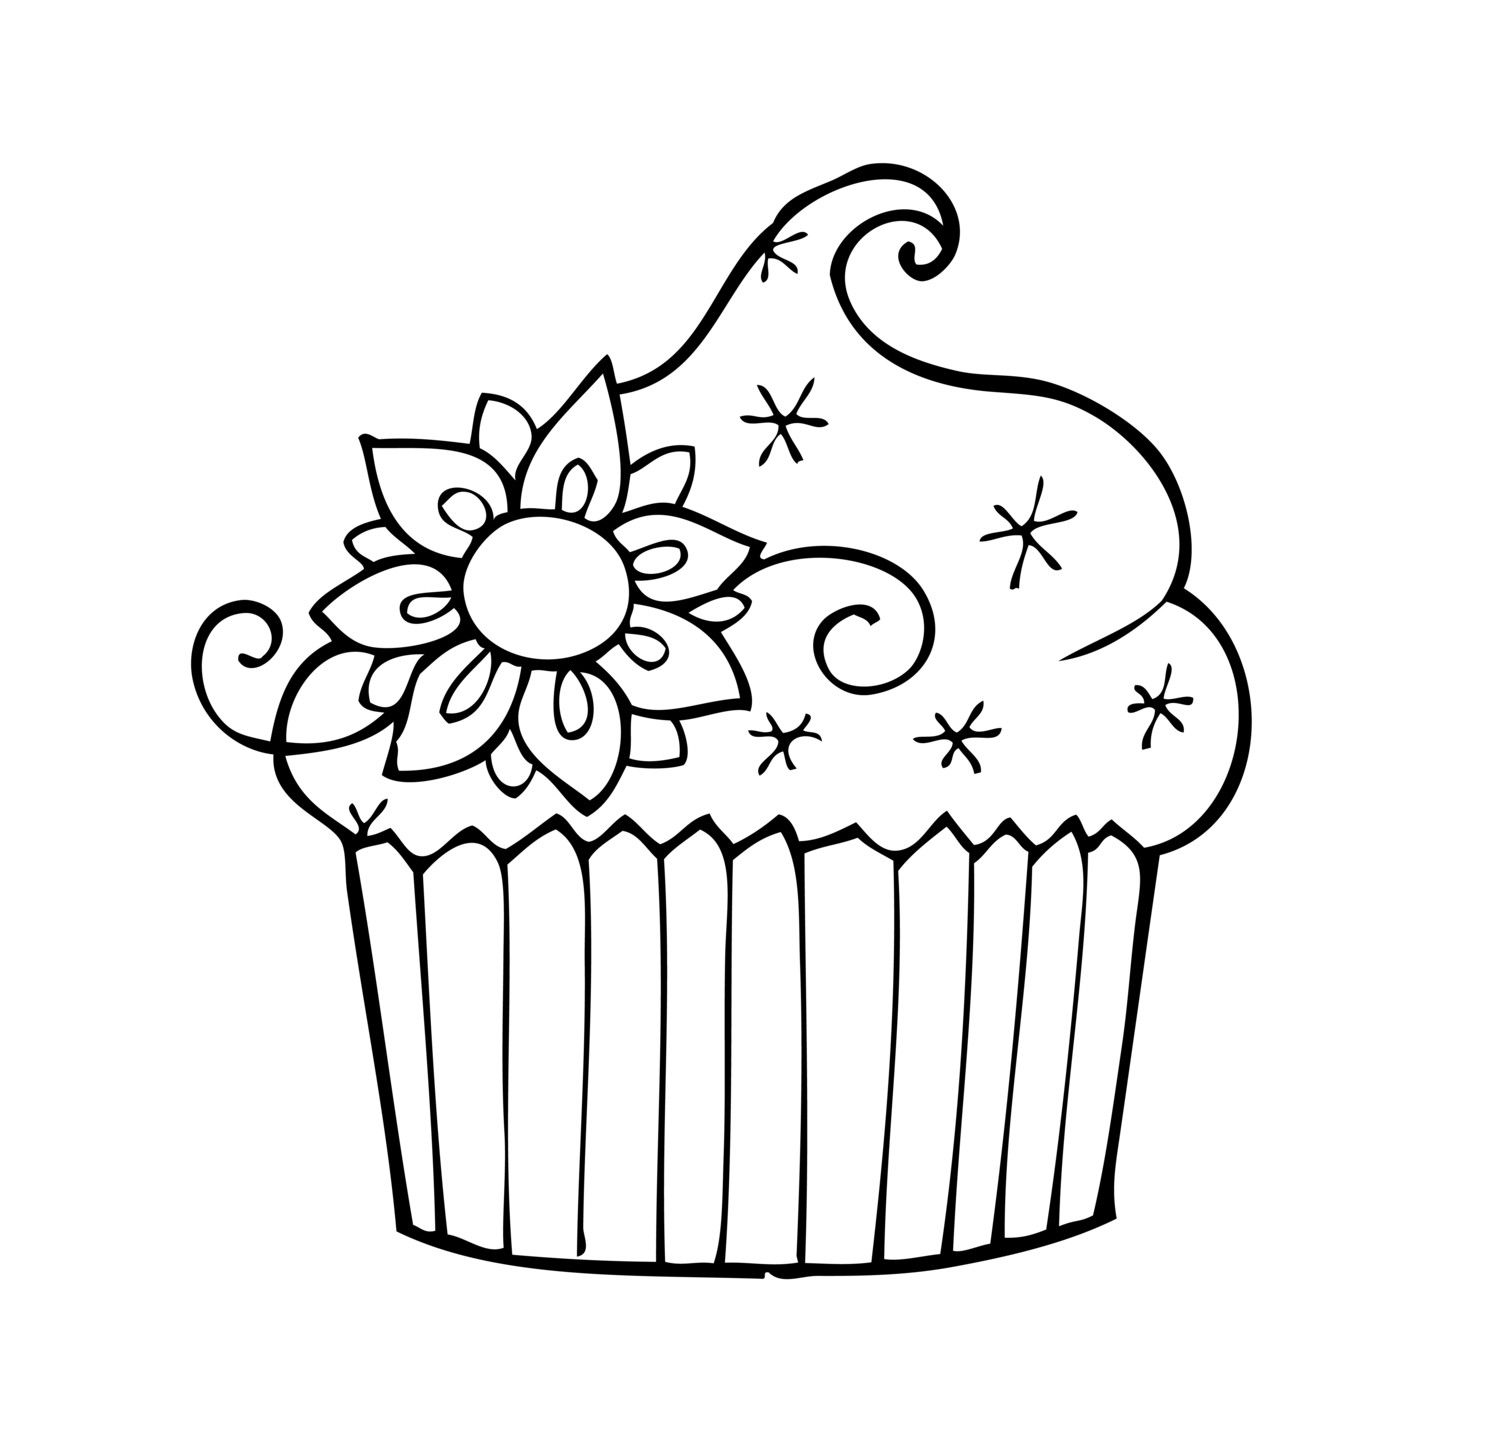 Sparkle Cupcake Birthday Coloring Pages Cupcake Coloring Pages Coloring Pages